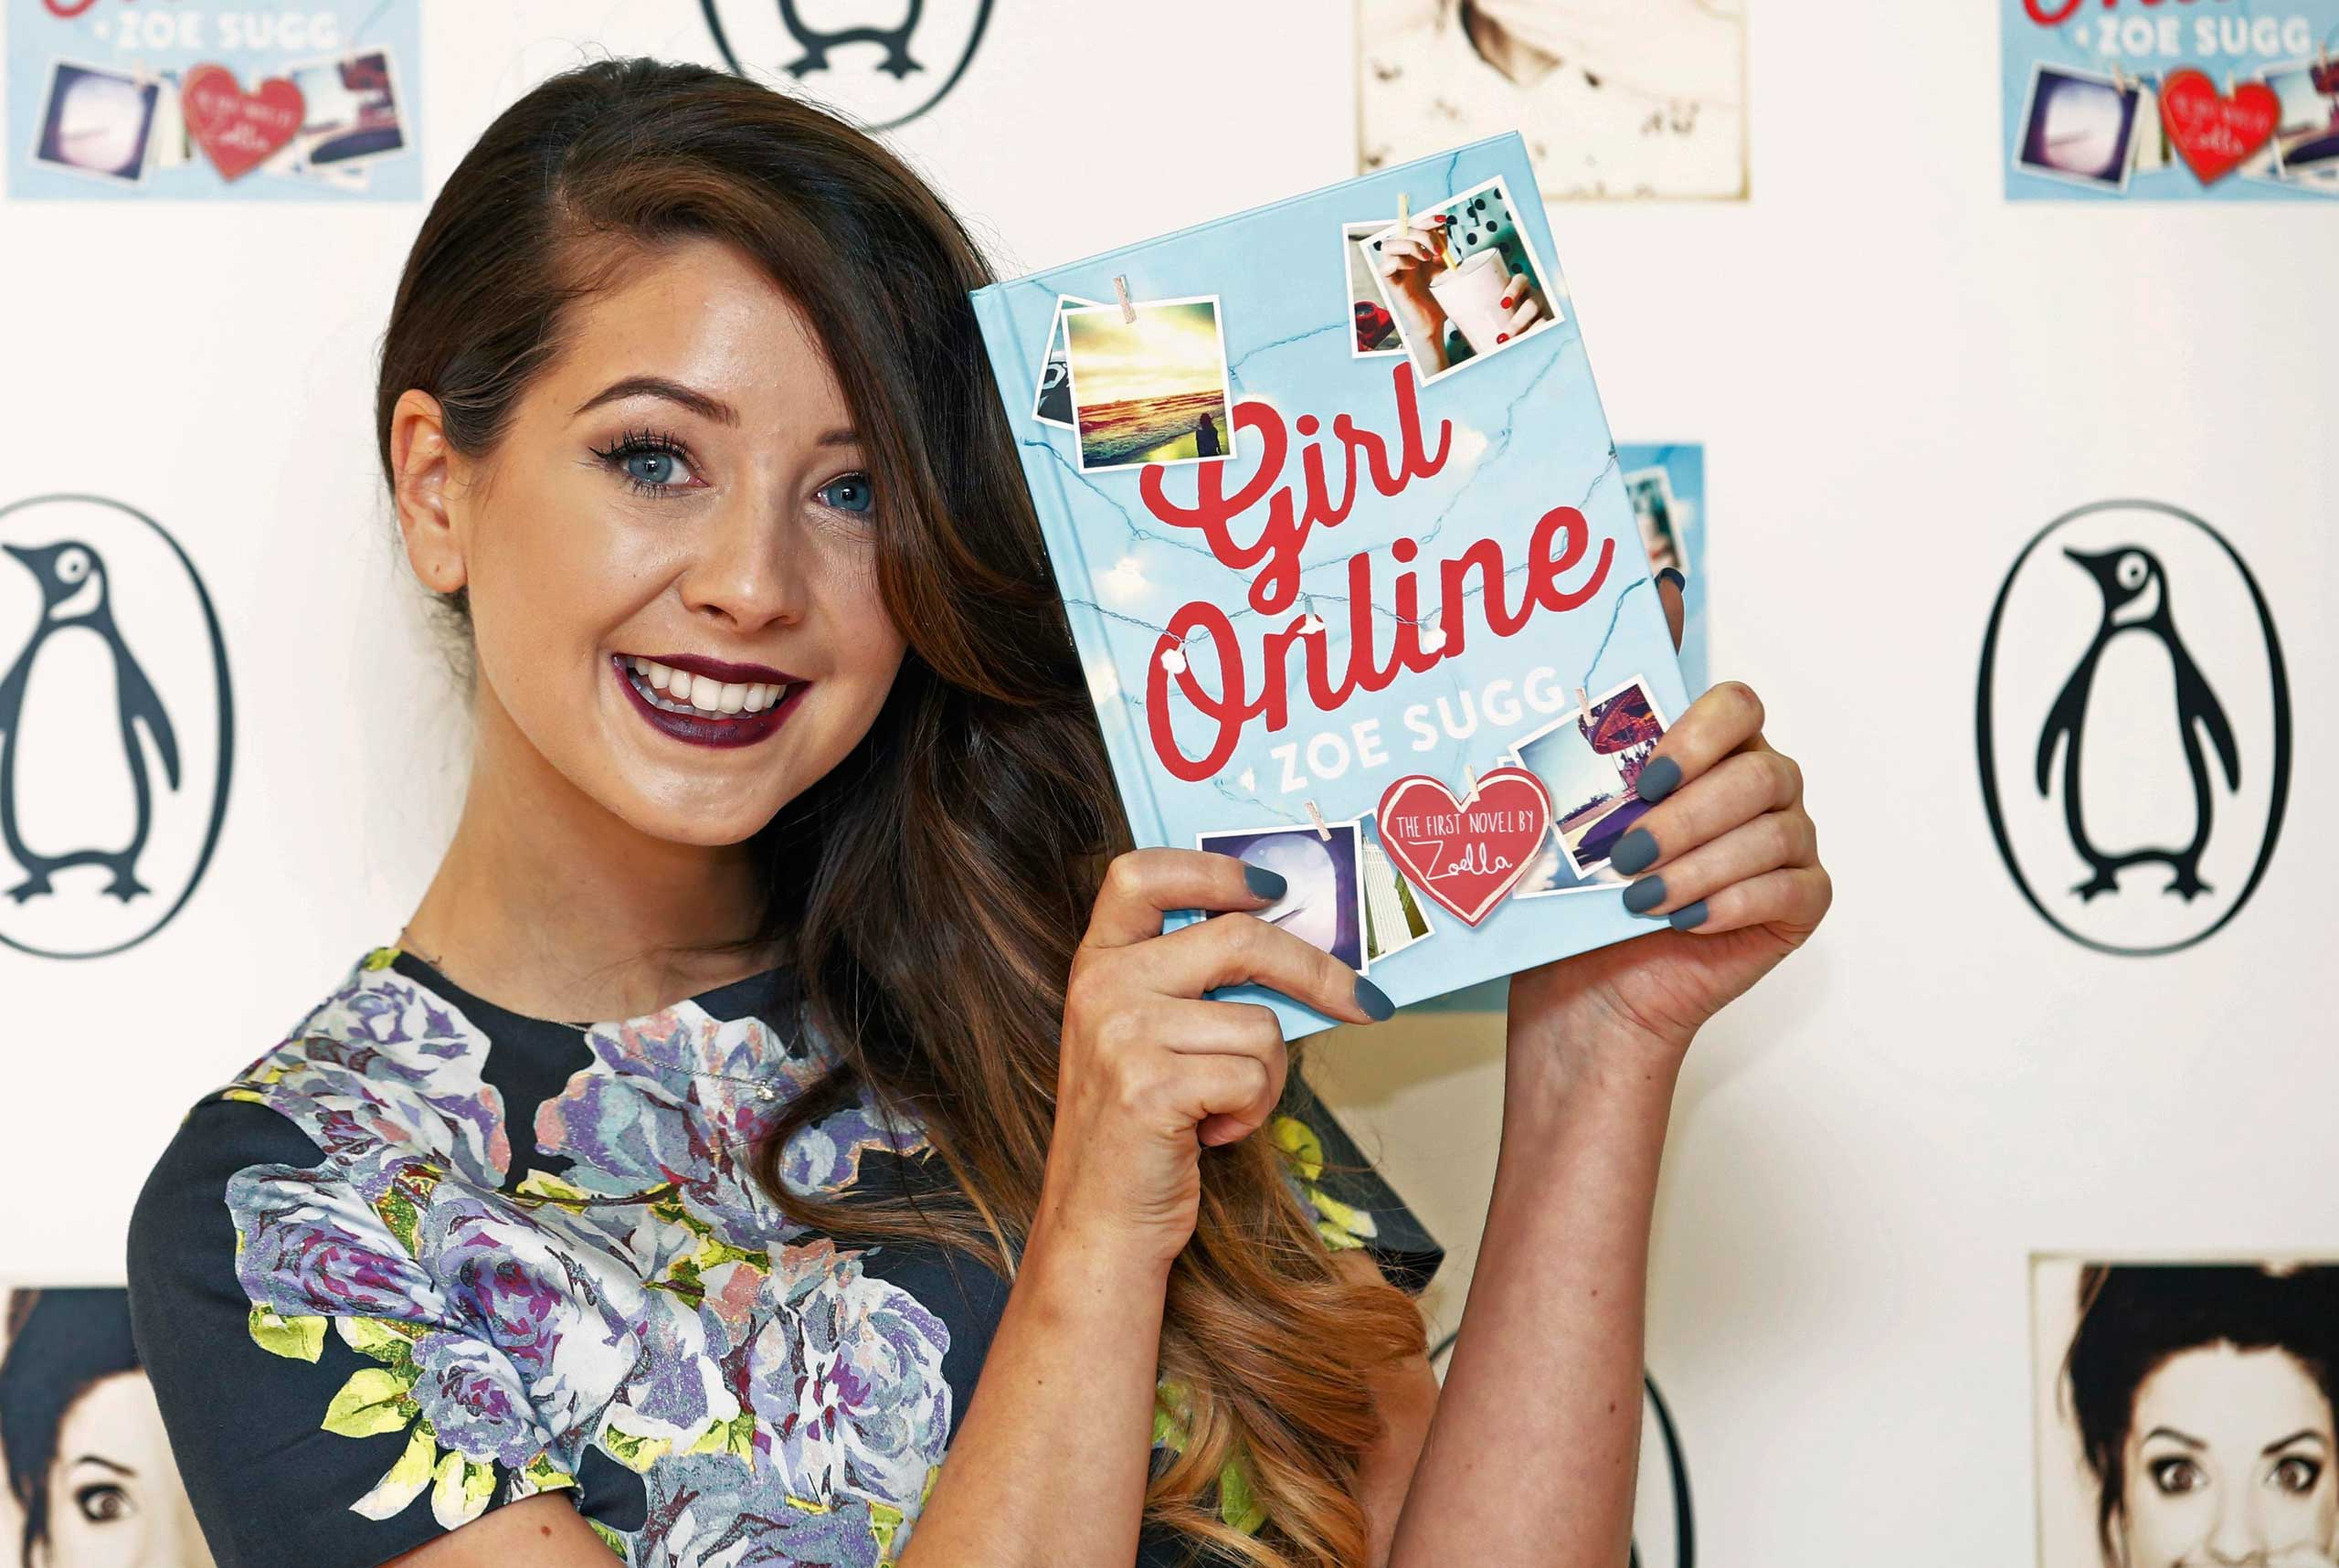 YouTube blogger Zoe Sugg, known as Zoella, poses during a photocall for her debut novel  Girl Online  in London, Nov. 24, 2014.